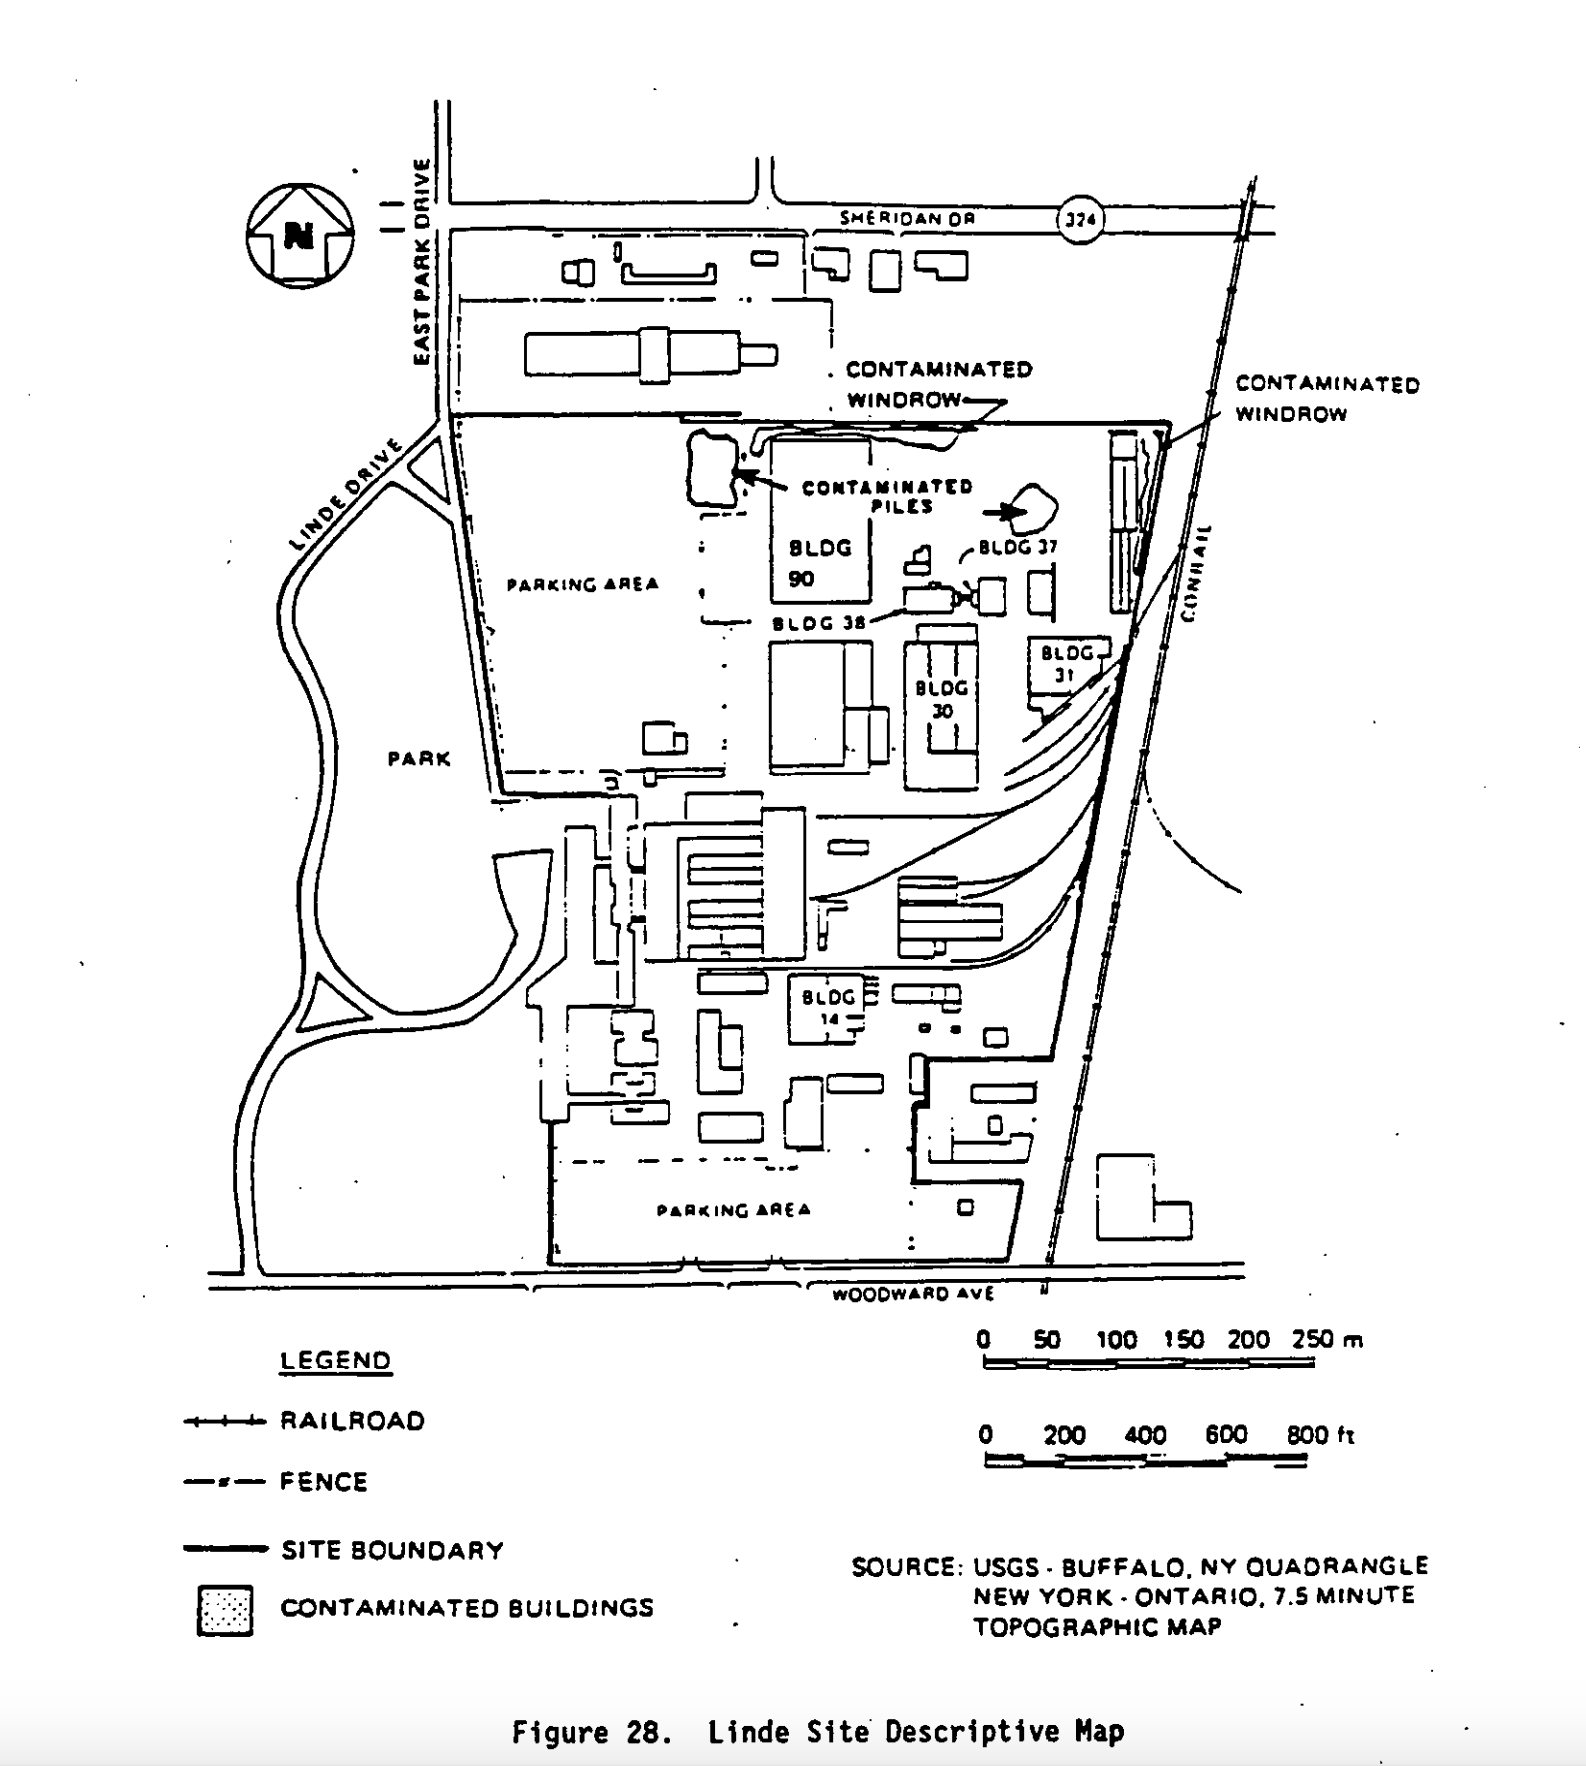 Tonawanda Linde Site Map. Courtesy of DOE Report, 1991.